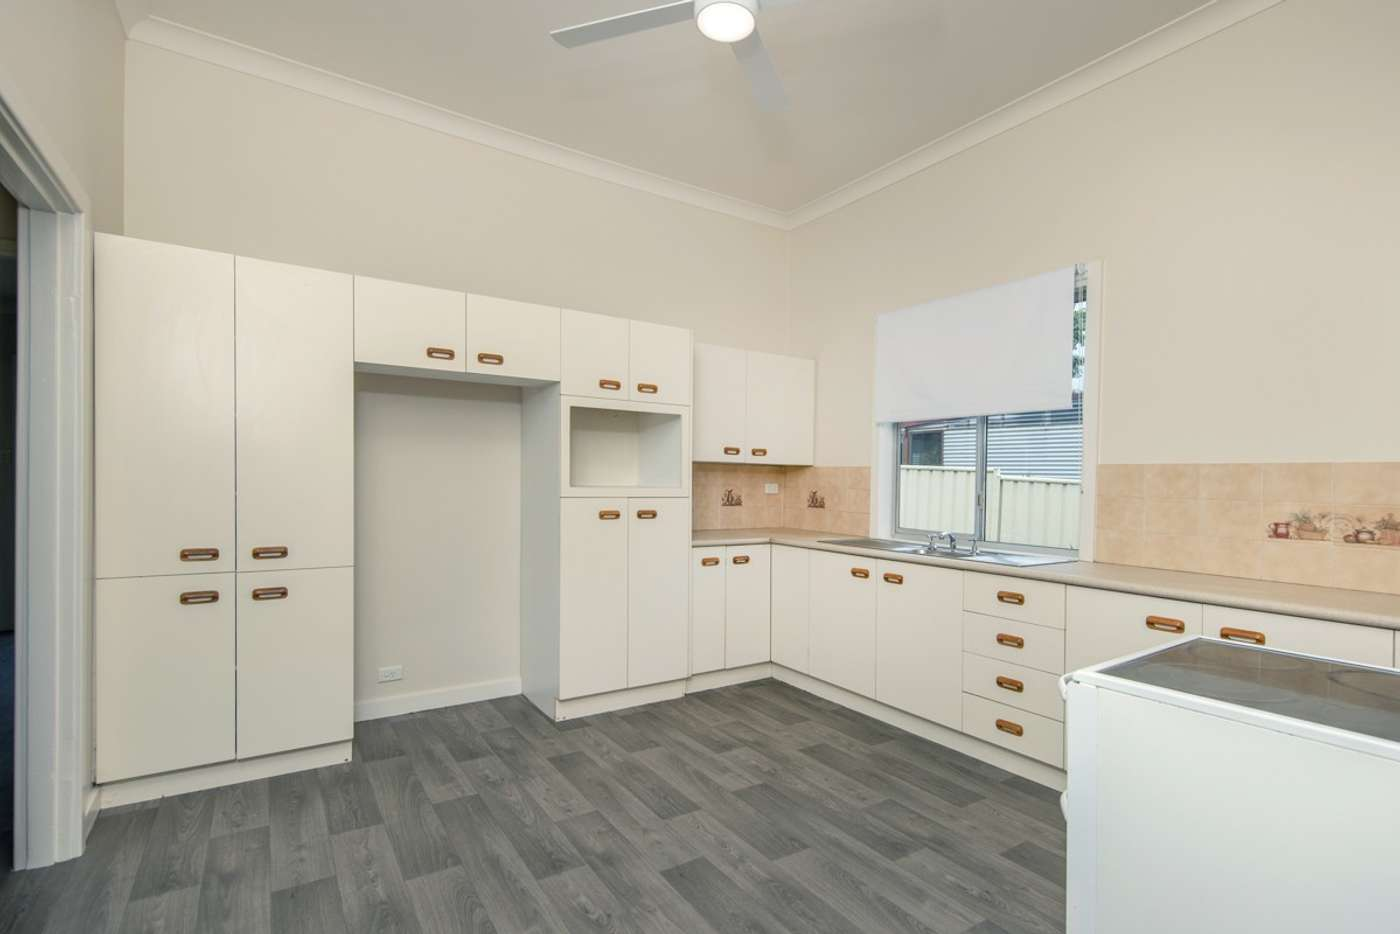 Fifth view of Homely house listing, 1 Marton Street, Shortland NSW 2307